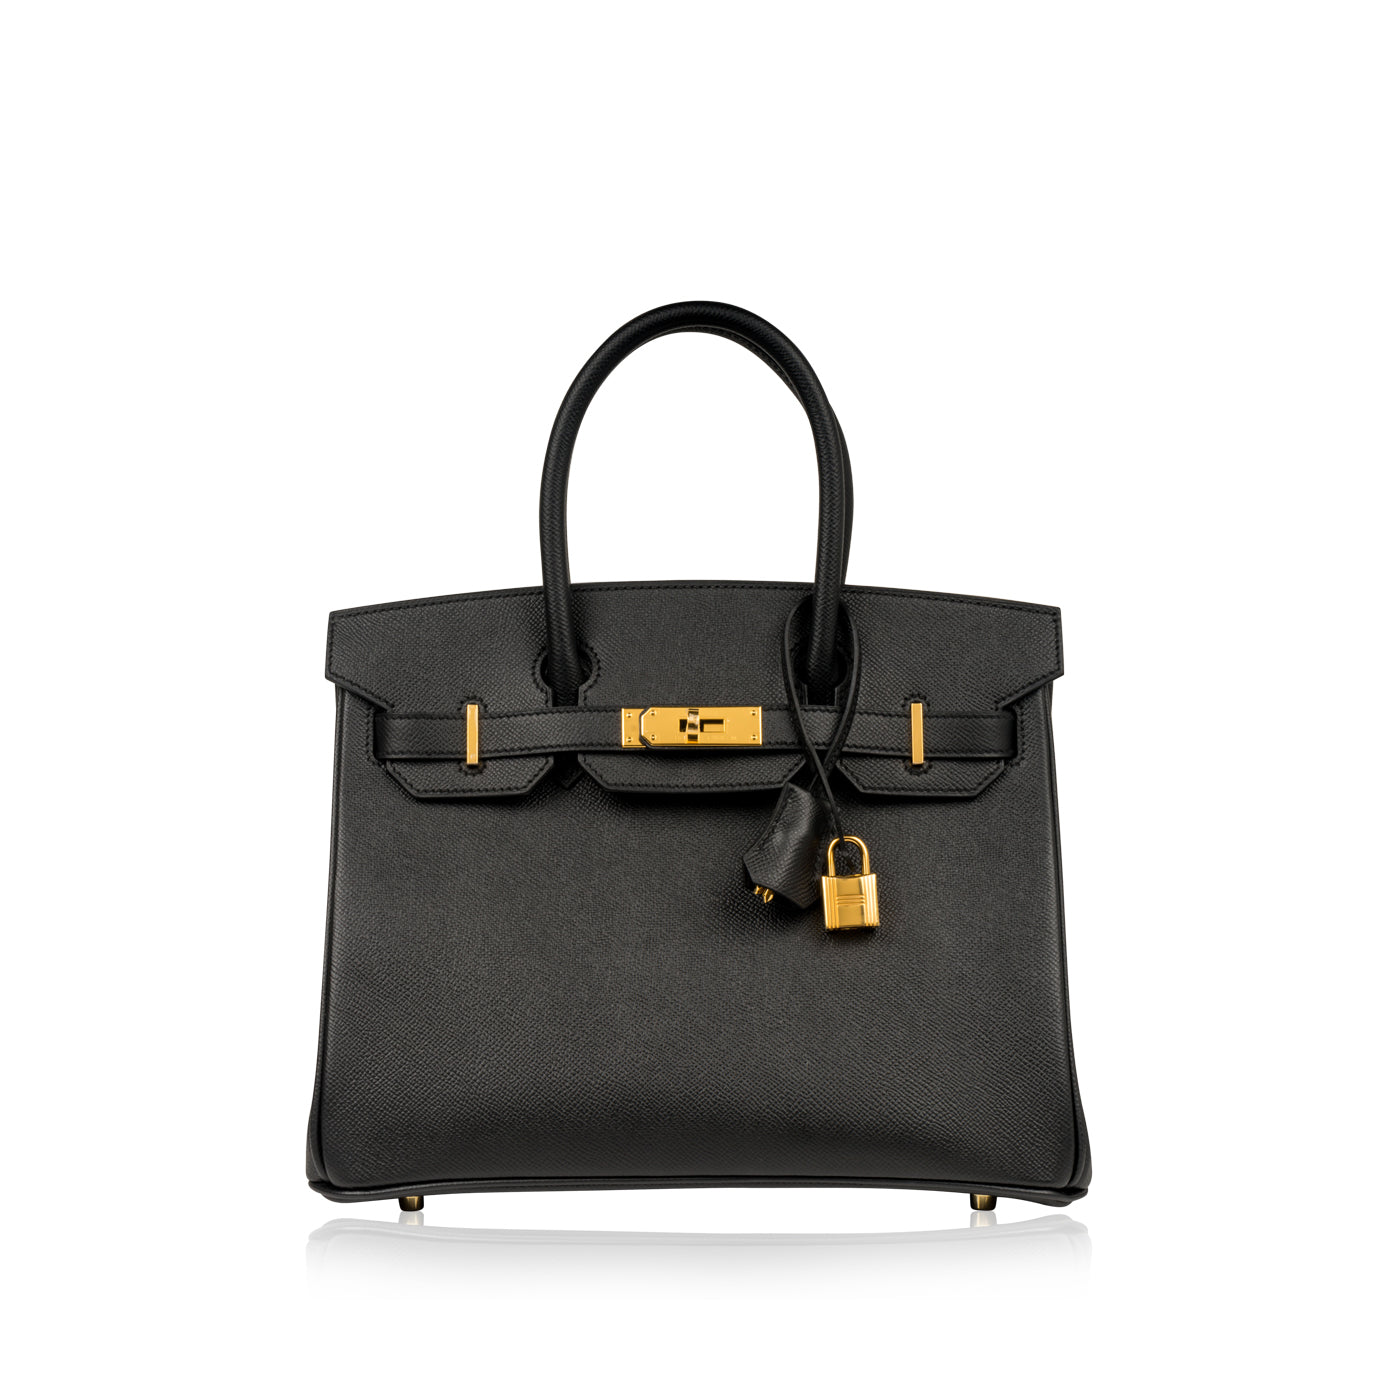 673fd7575e8e Hermès - Birkin 30cm - Black Epsom Leather - Gold Hardware